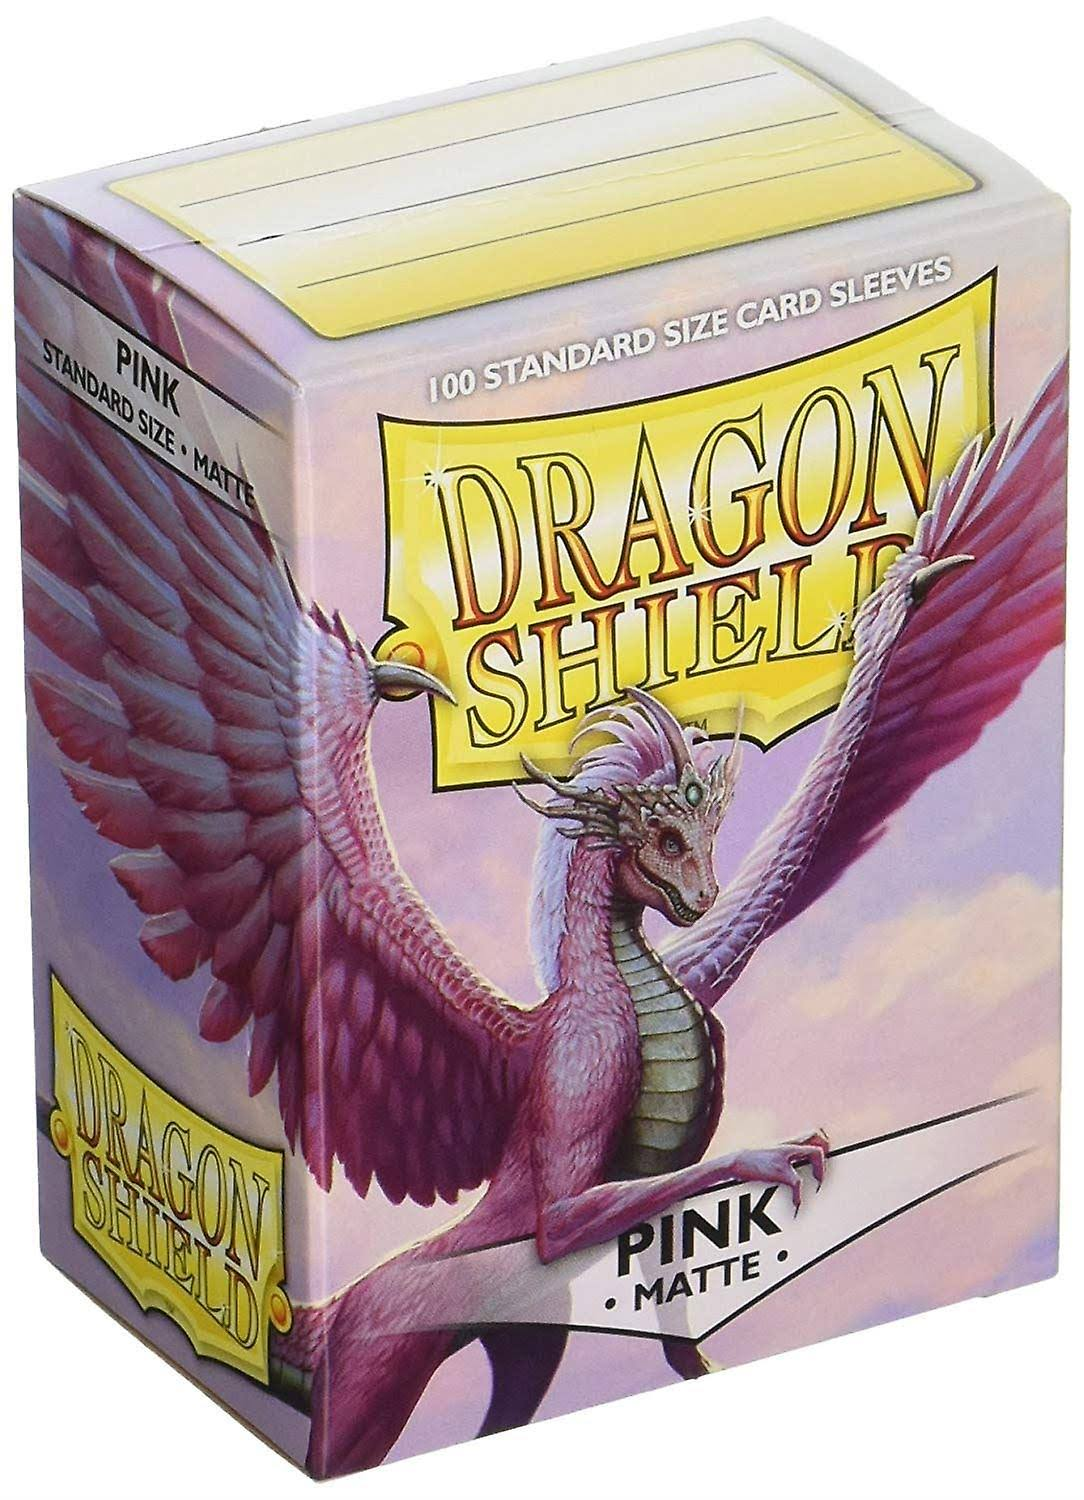 Dragon Shield Standard Sleeves - 100 Sleeves, Matte Pink